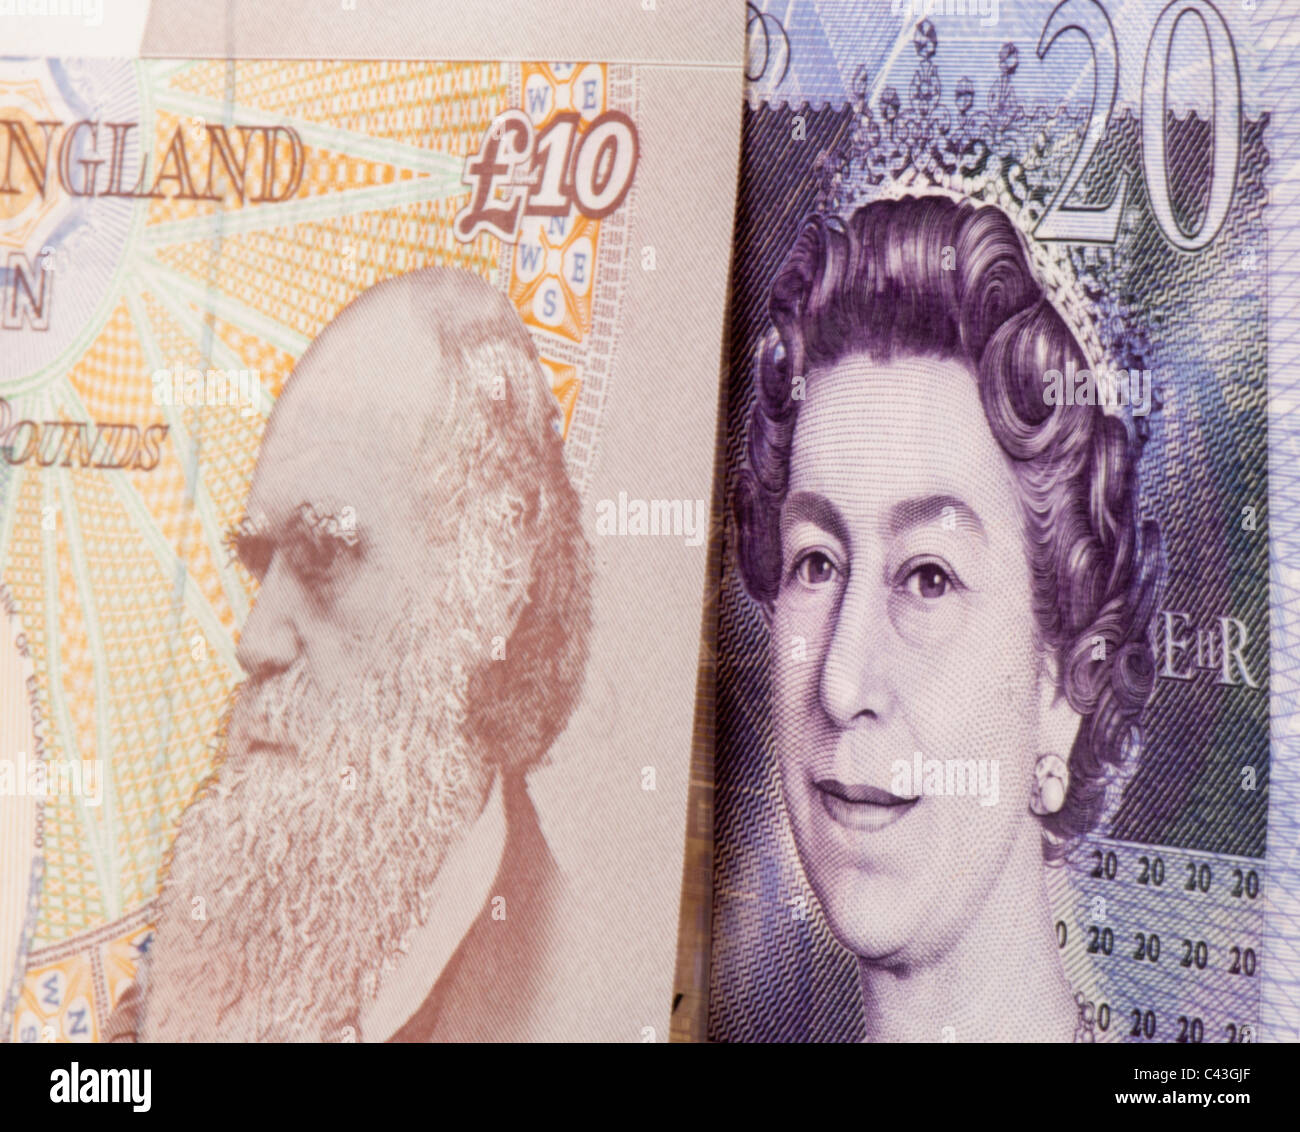 UK twenty pound and 10 pound showing head of Queen Elizabeth II and Charles Darwin - Stock Image